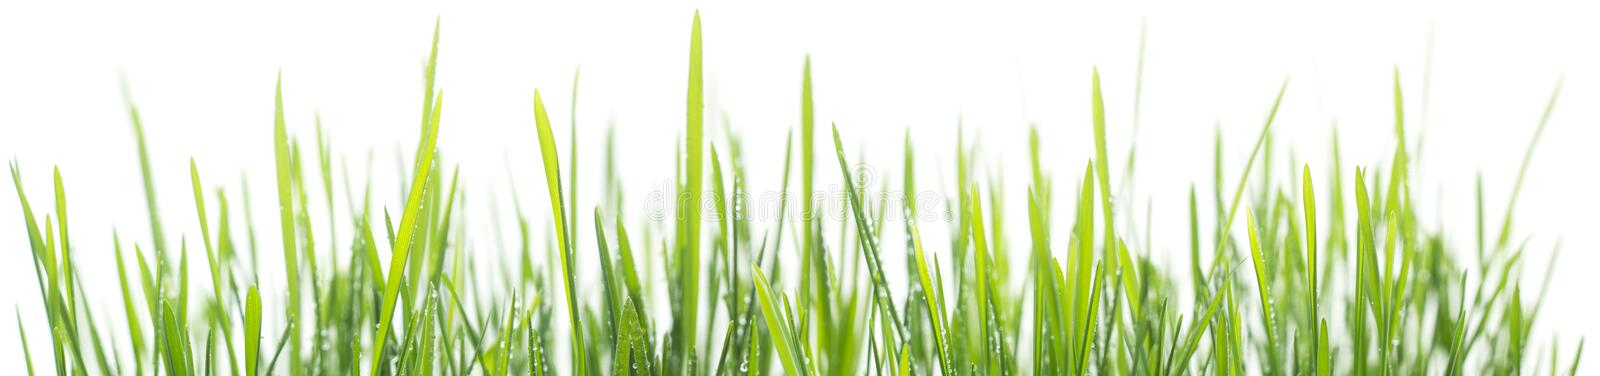 Green grass panorama isolated on white background royalty free stock photography